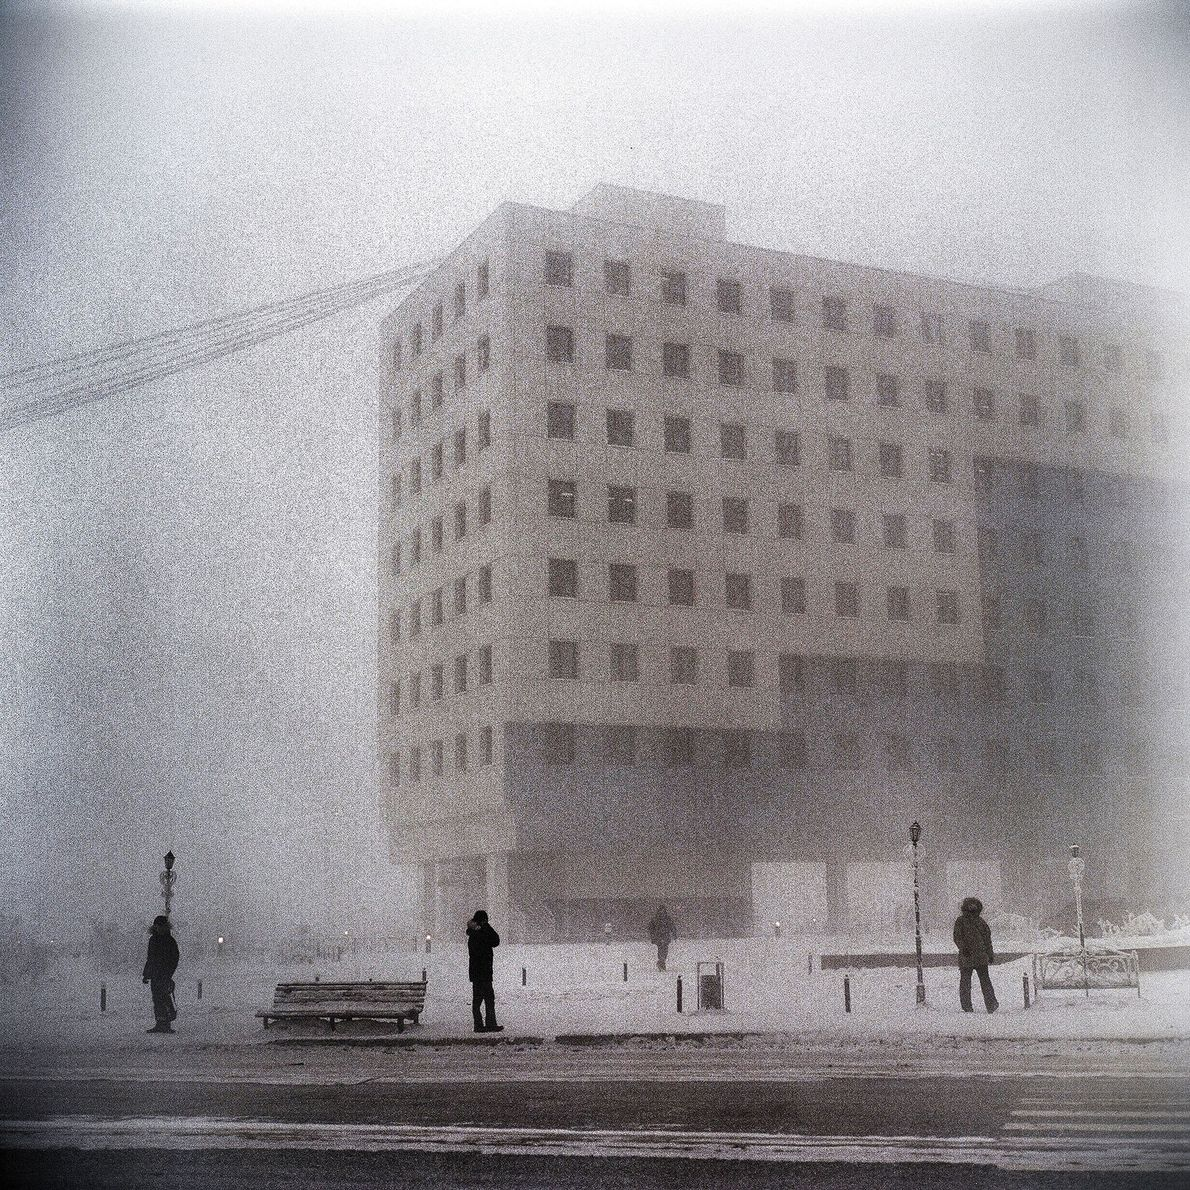 Thick, icy fog shrouds the city.